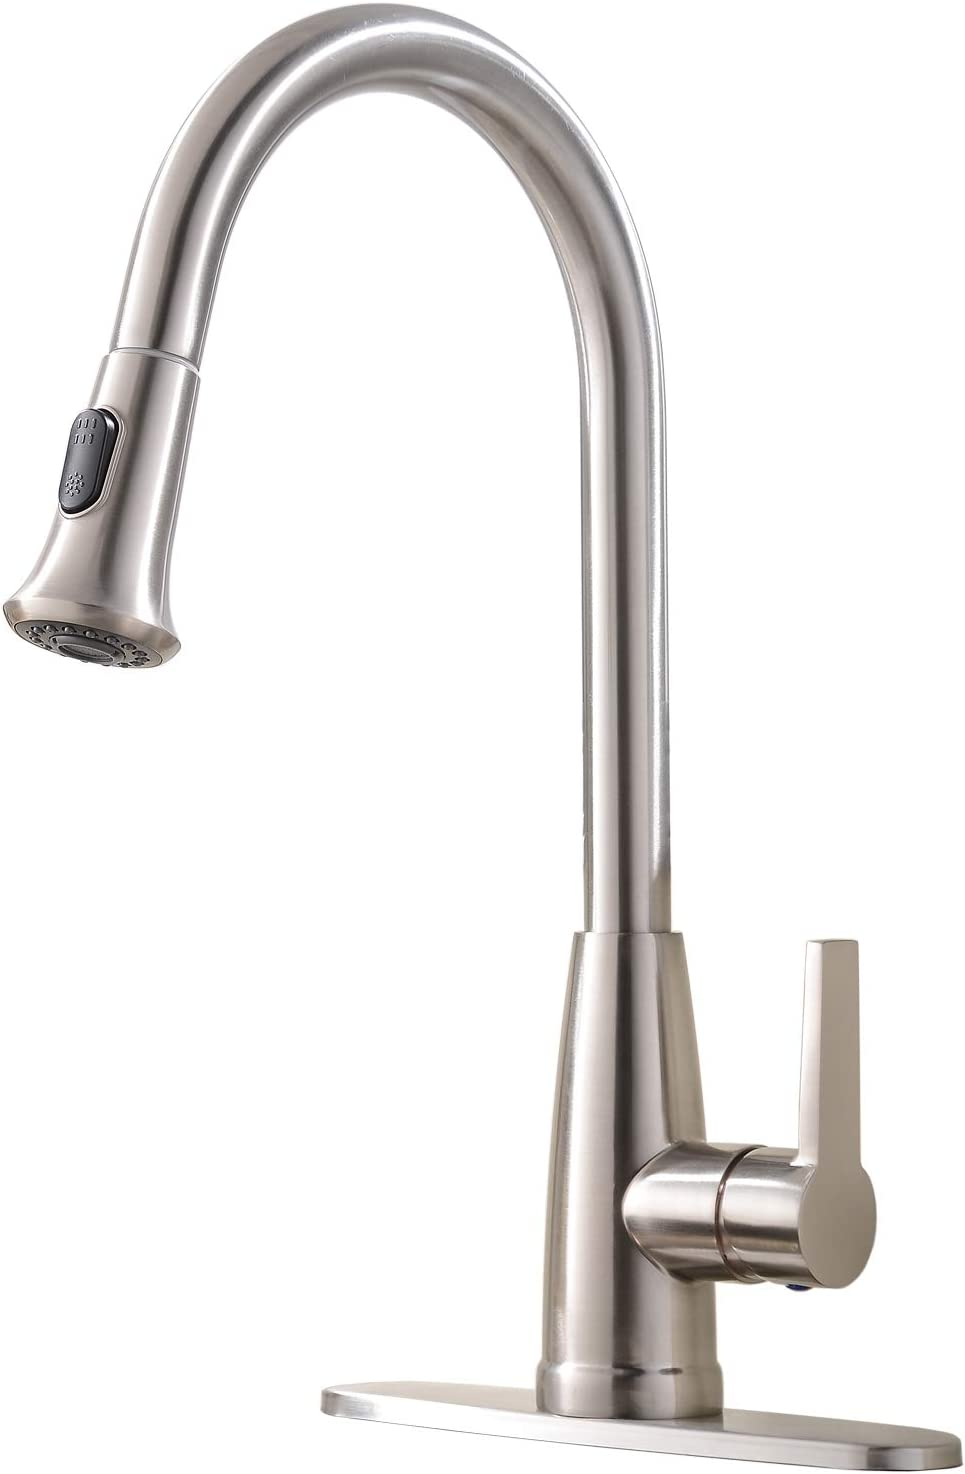 Hotis Modern Brushed Nickel Single Handle Kitchen Faucet,Kitchen Sink Faucet with Plate